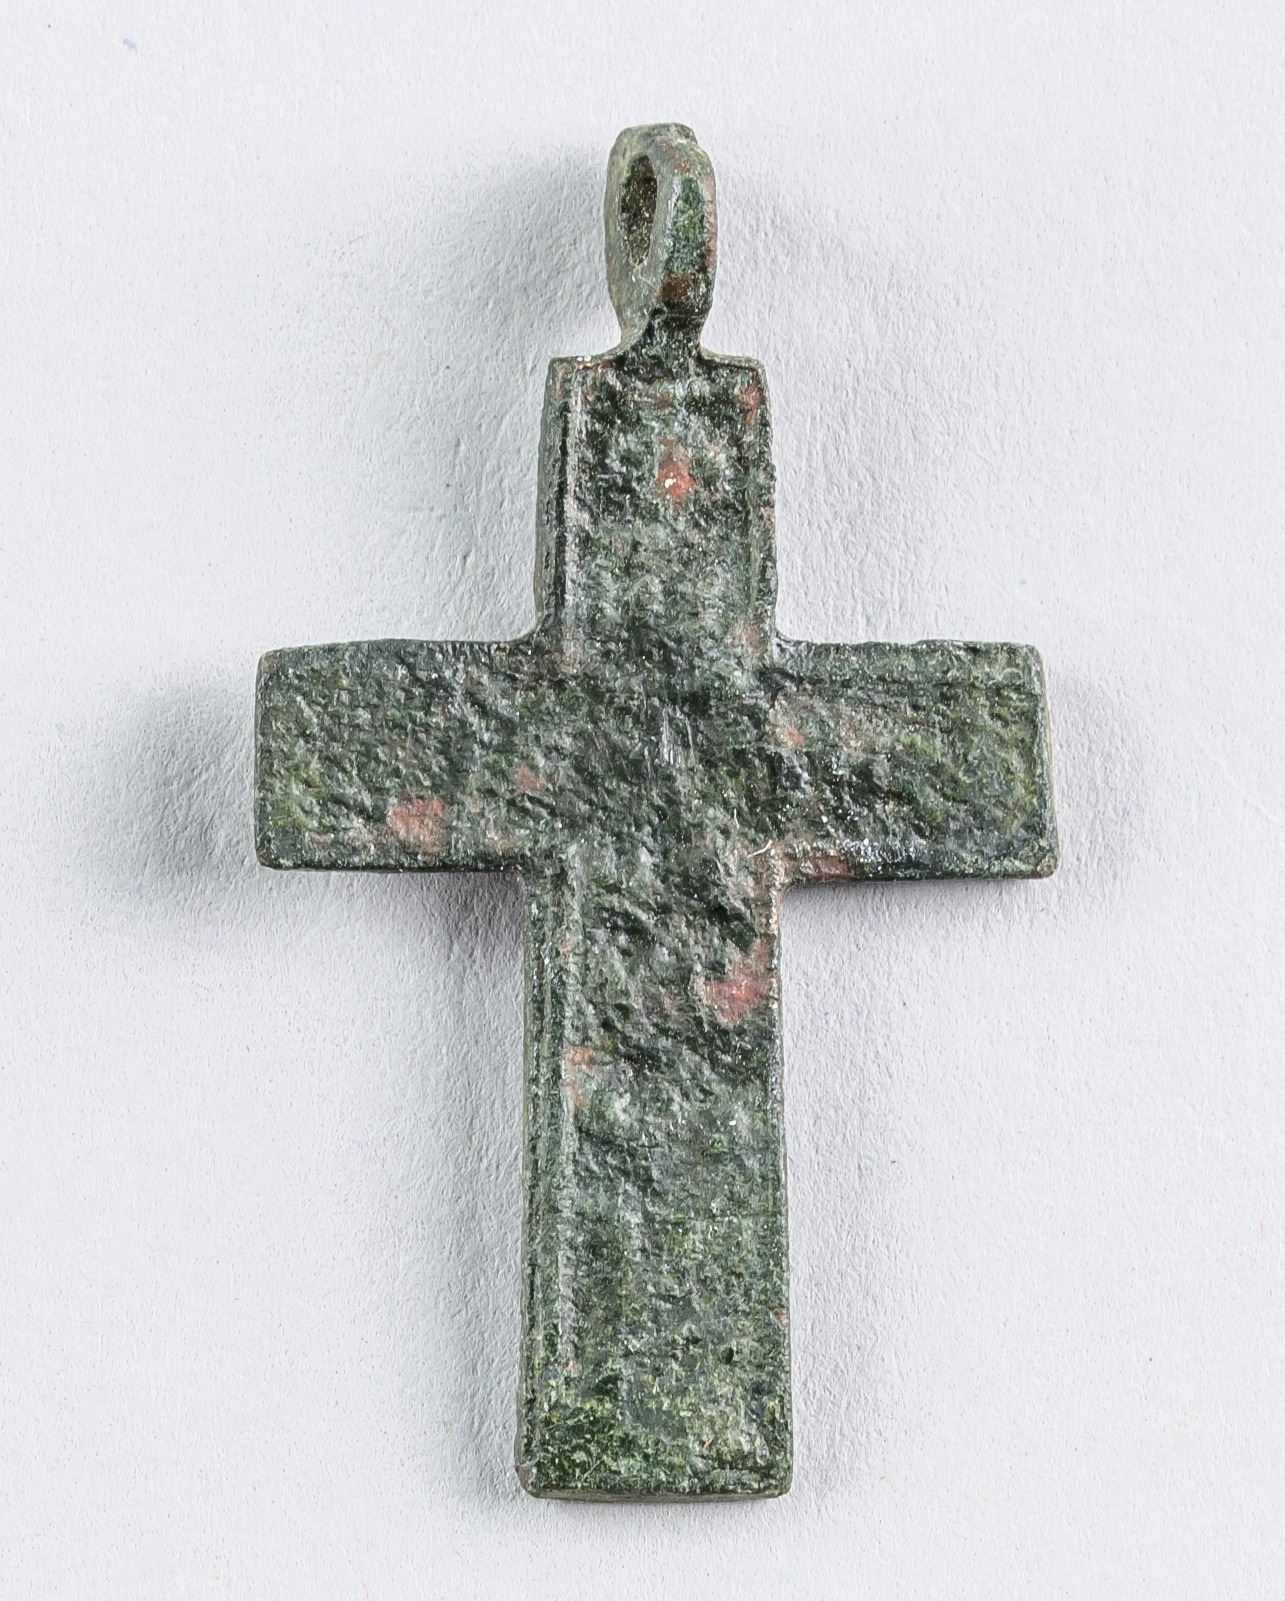 16th century russian orthodox cross pendant image 2 16th century russian orthodox cross pendant aloadofball Image collections